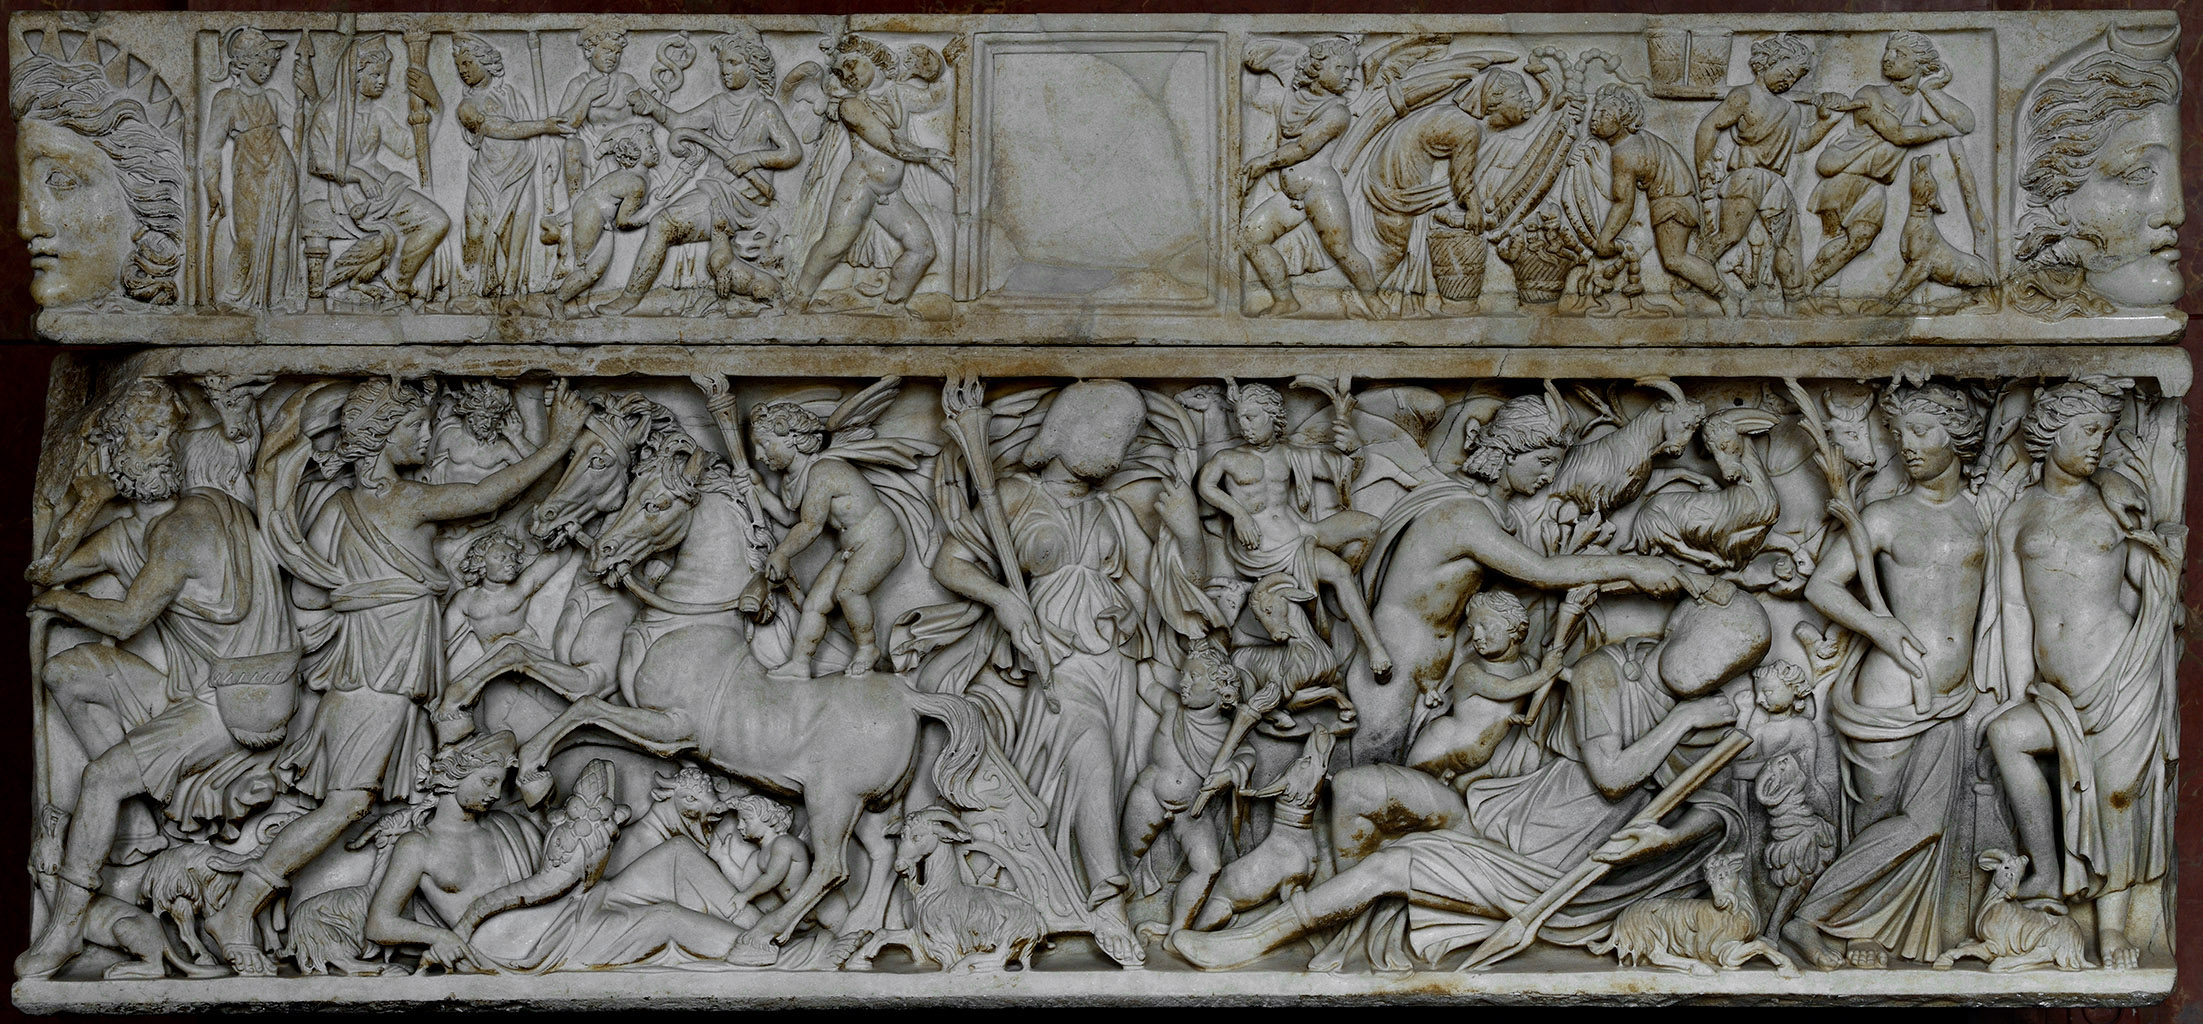 Sarcophagus with a myth of Selene and Endymion. Marble. Ca. 235 CE. L. 209 cm, H. 95 cm, B. 61 cm. Inv. No. Ma 1335. Paris, Louvre Museum